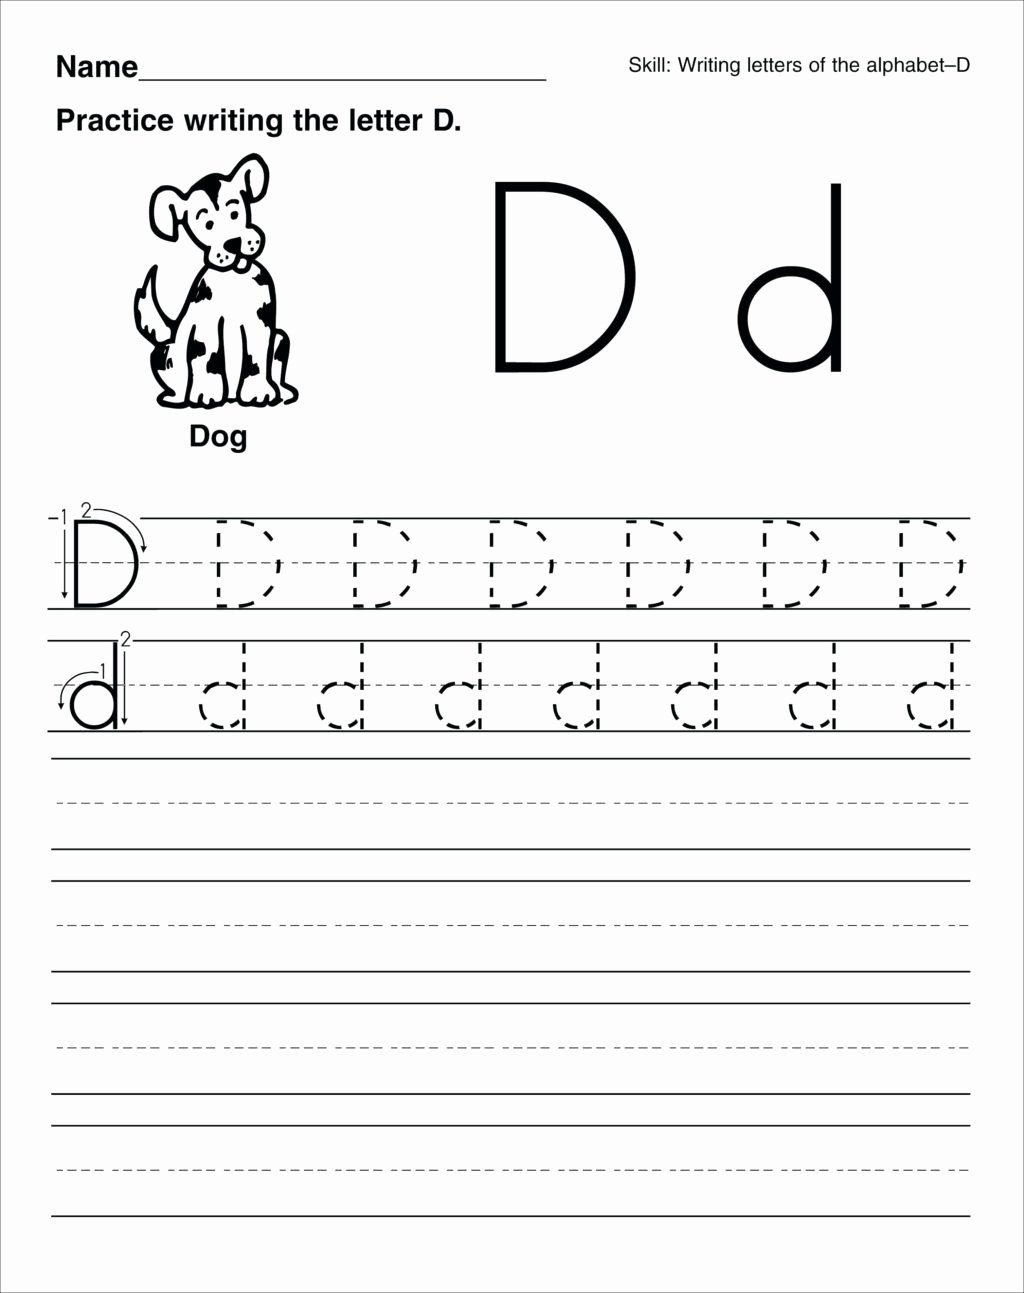 Printable Abc Worksheets for Preschoolers New Worksheet astonishingorksheets for Preschool Free